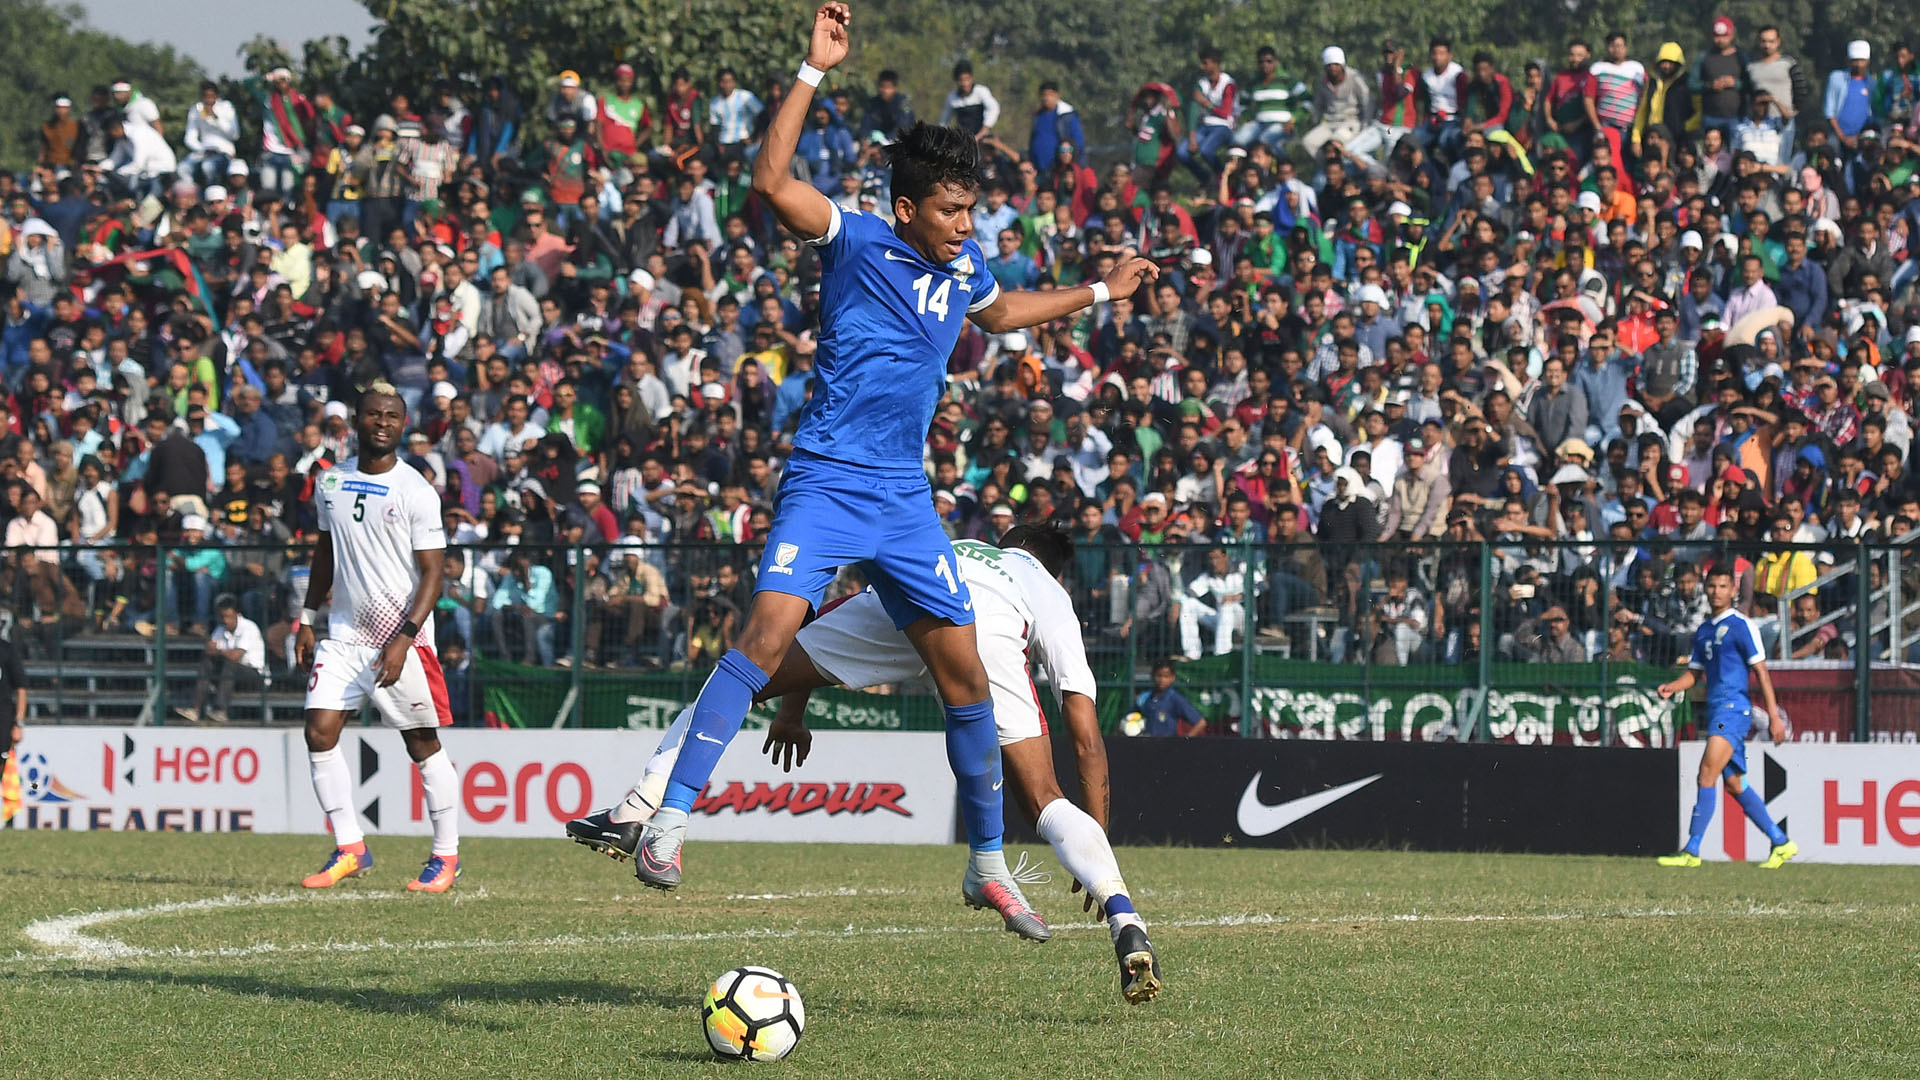 Rahim Ali - The teenager who has already appeared for both Mohun Bagan and East Bengal